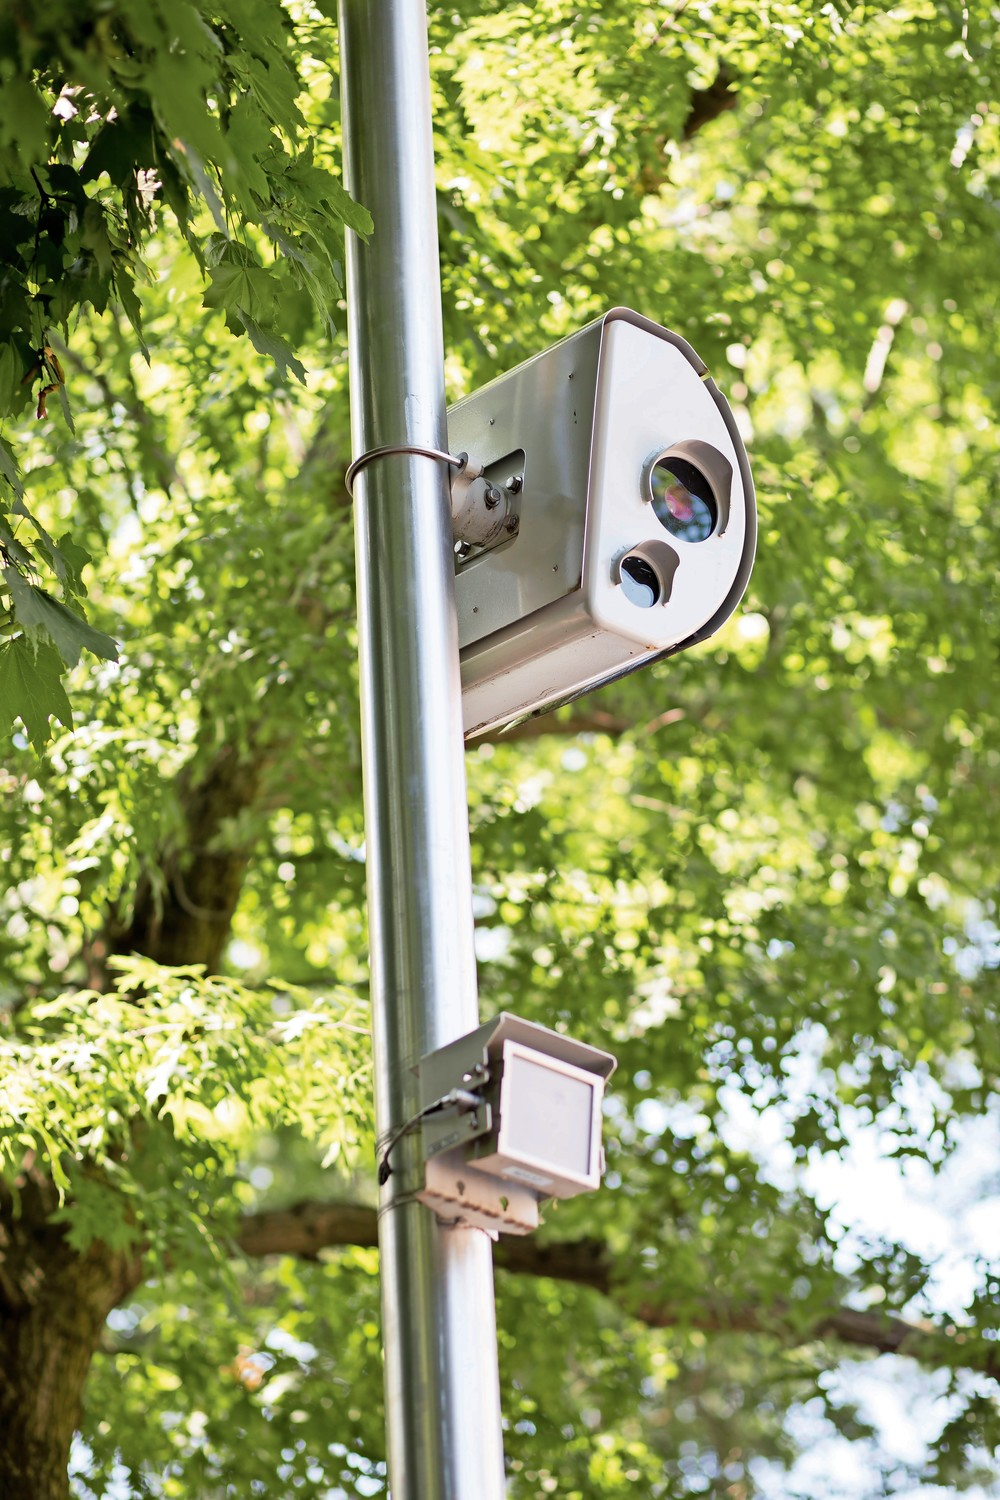 A speed camera looks out onto Riverdale Avenue between West 256th and West 259th streets near P.S. 81. The speed camera program is set to expire on July 21, which residents and local lawmakers feel is a mistake.